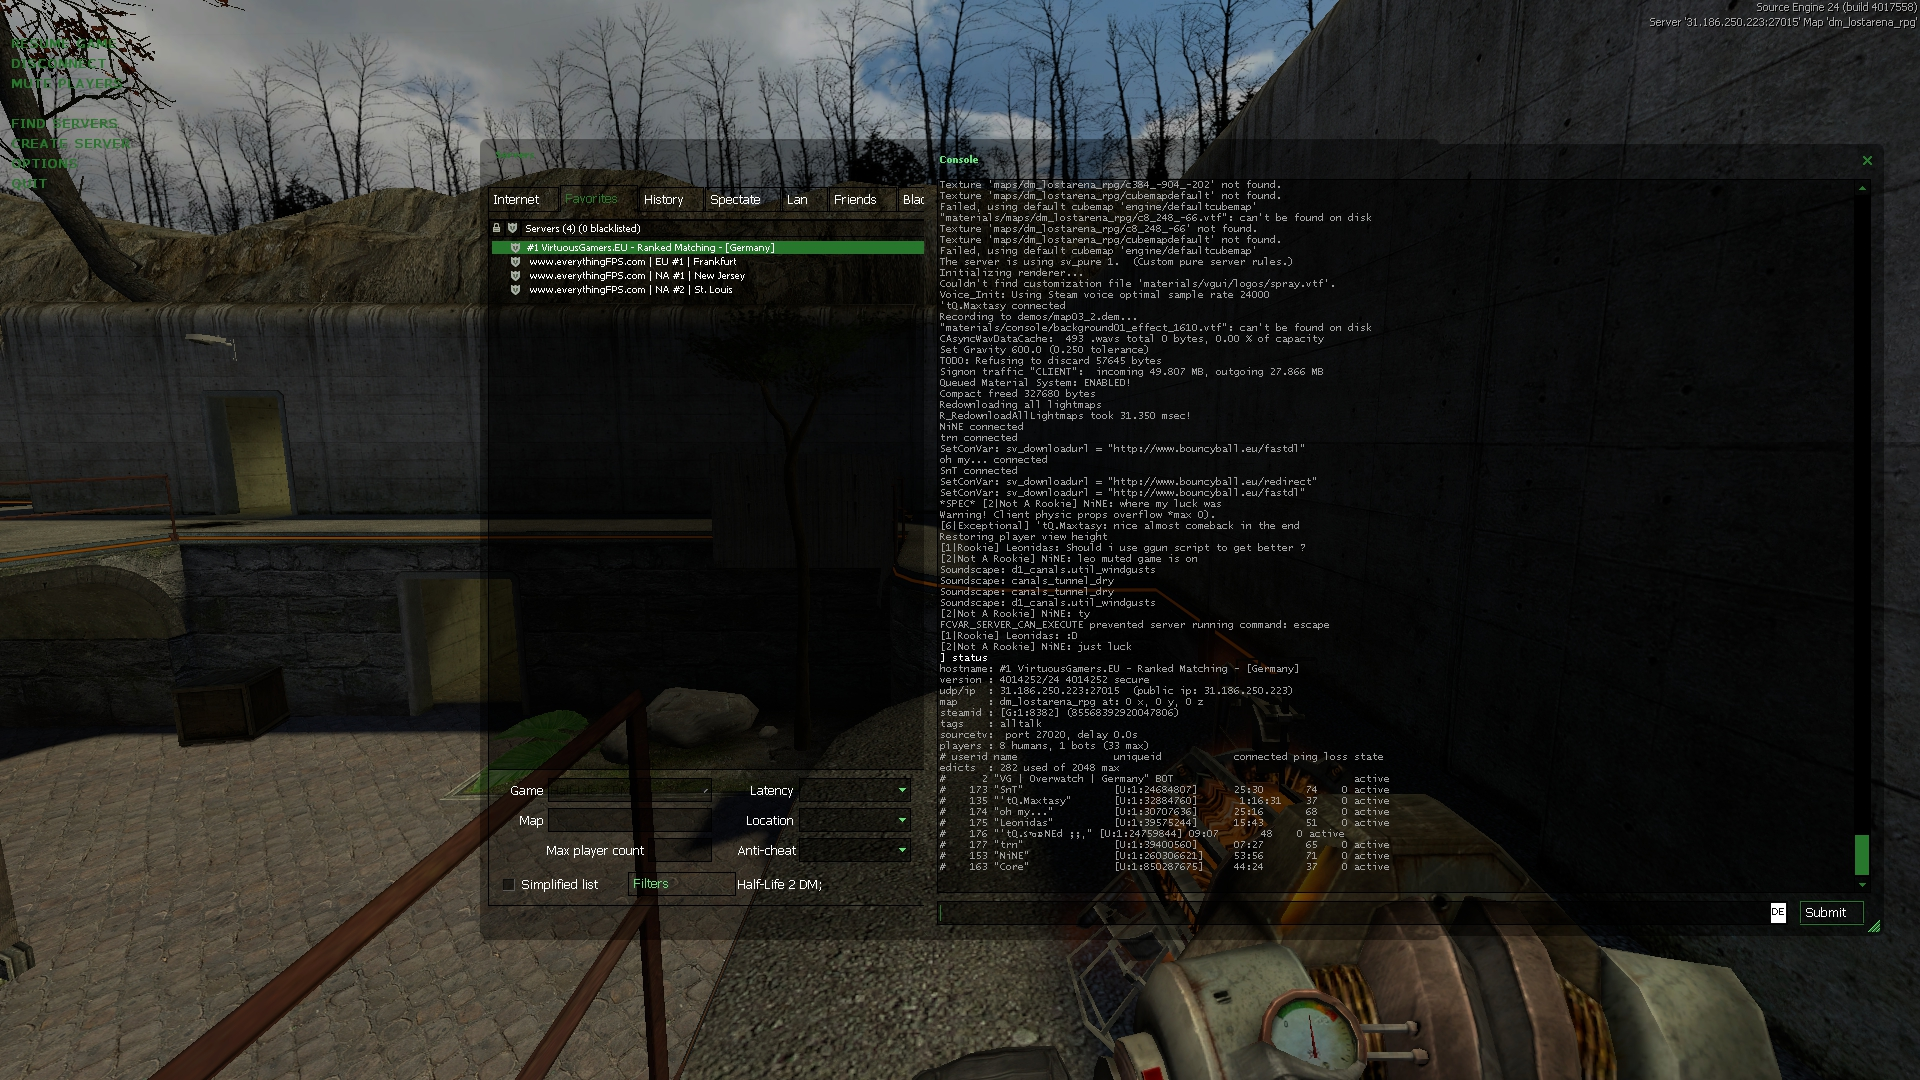 Half-Life 2 Deathmatch - Community for OldSchool Gamers